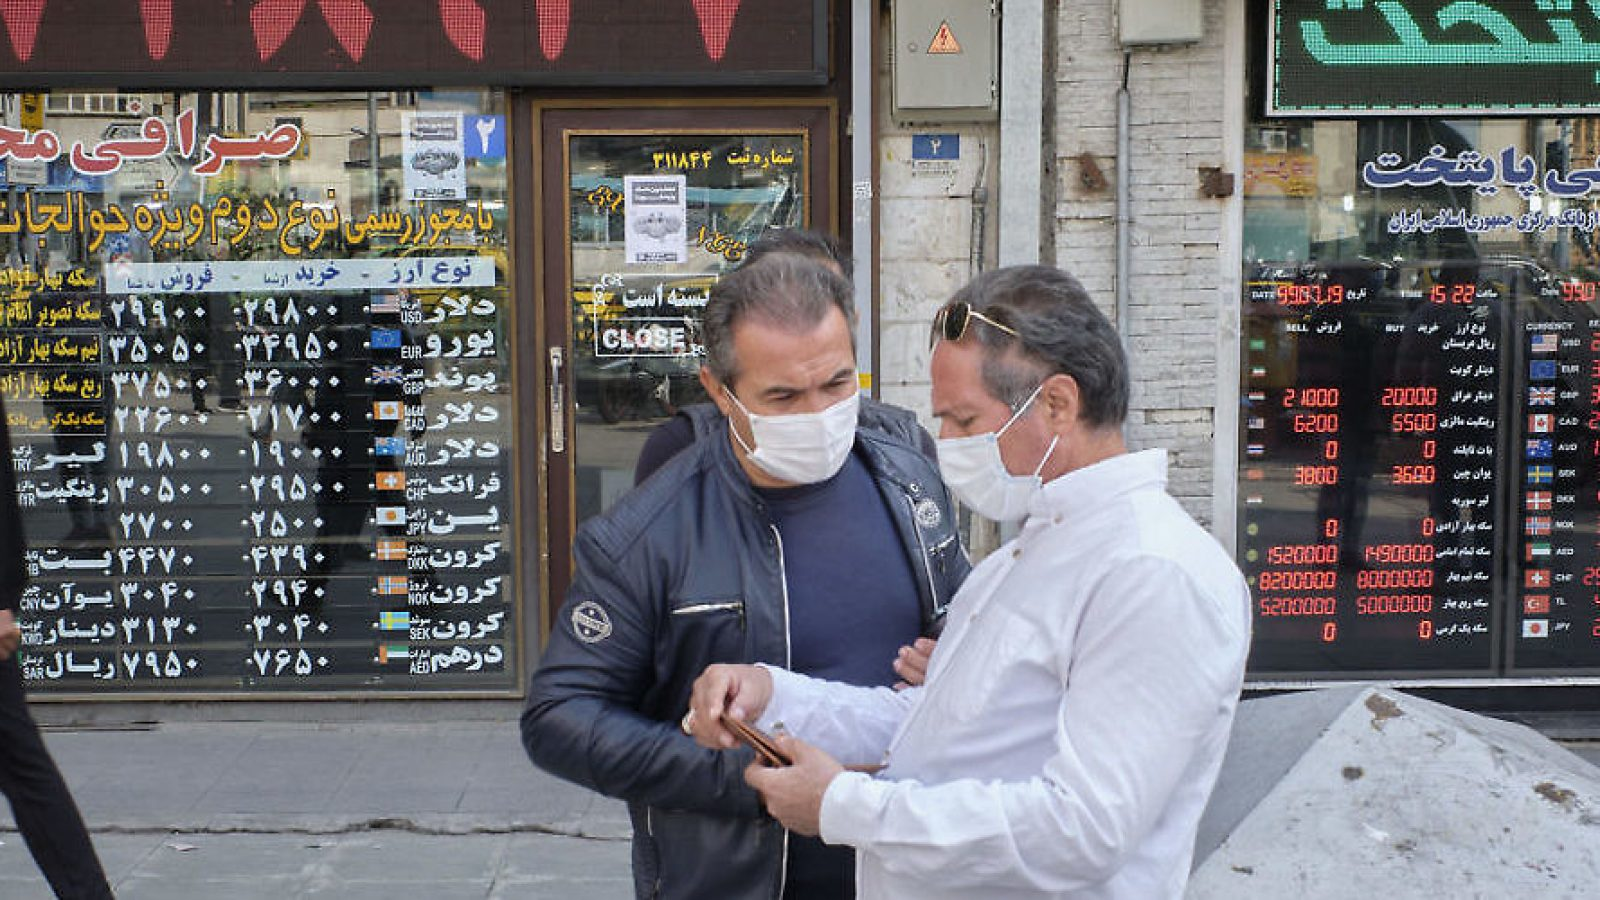 Two men in masks stand together in front of shops in Tehran.